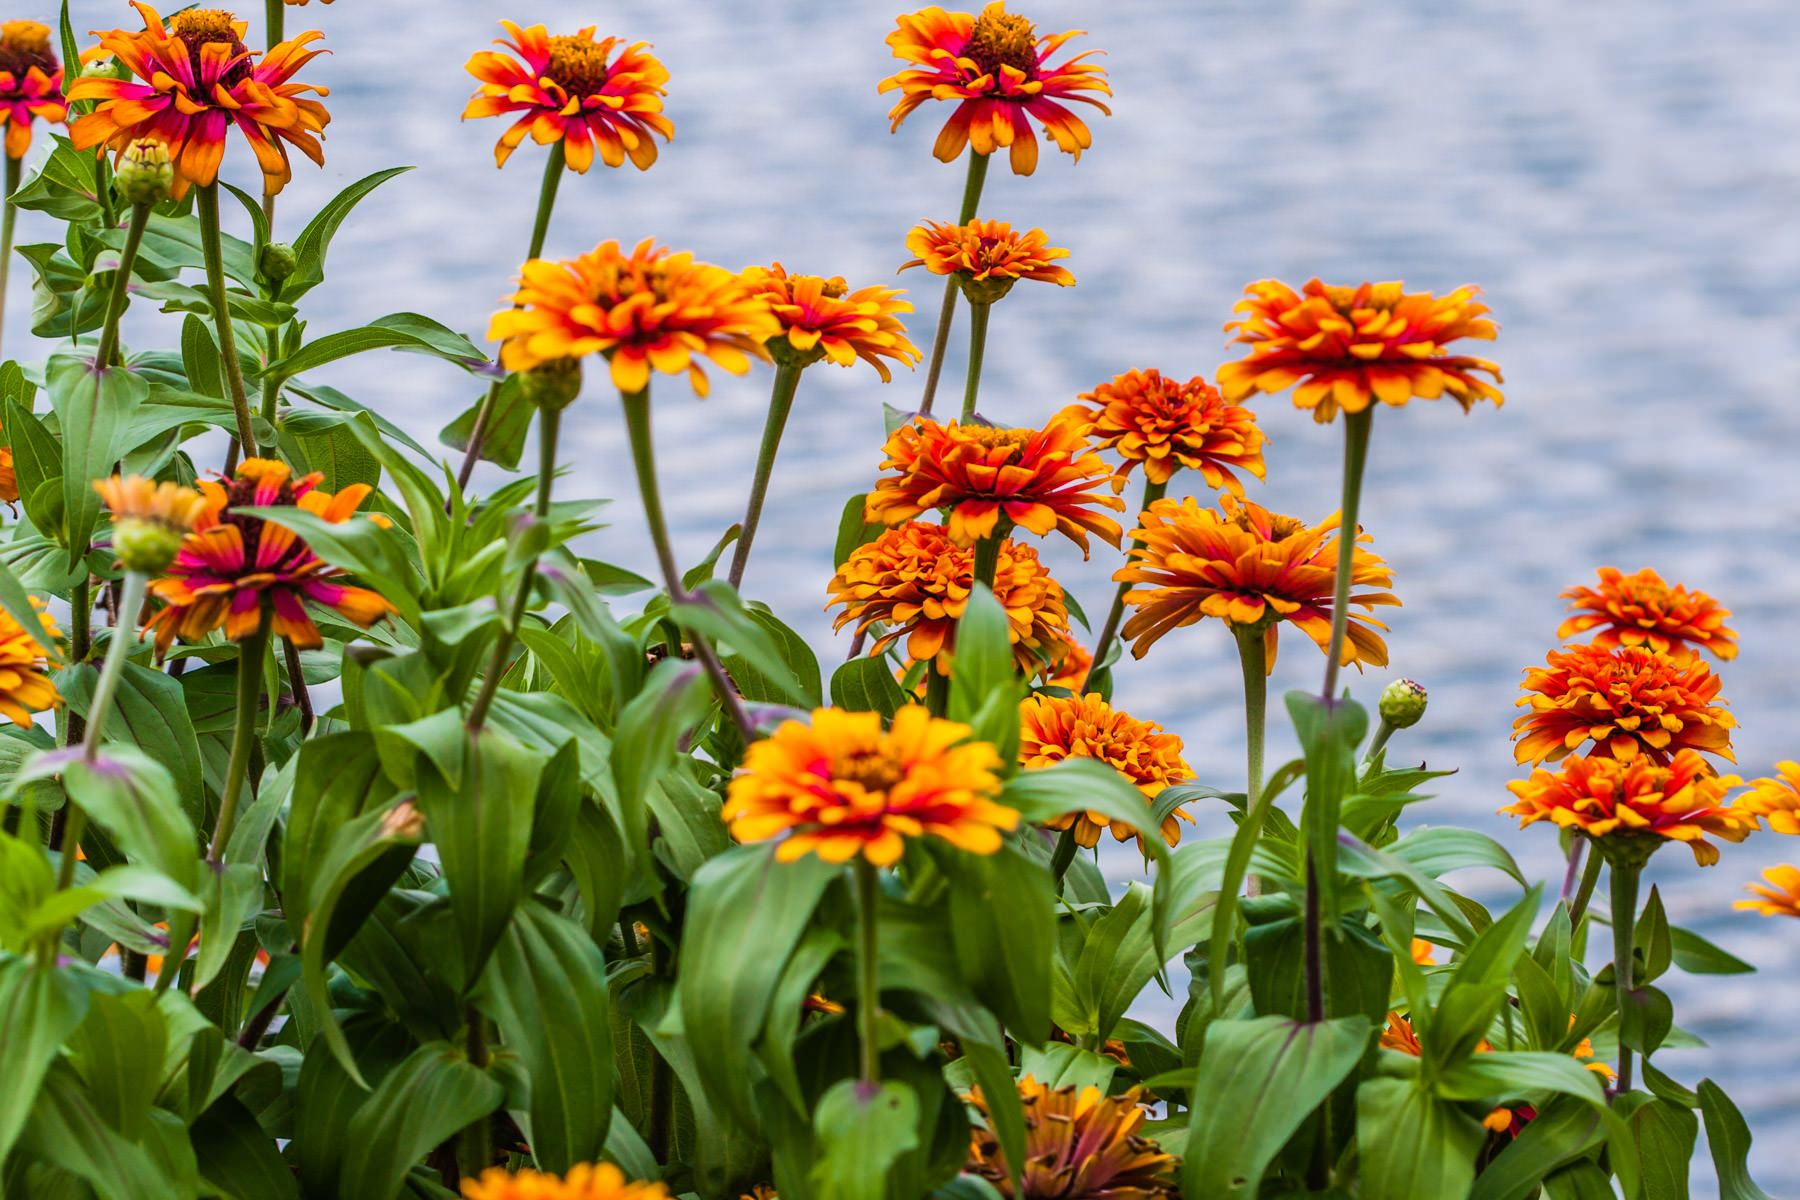 These orange flowers were next to the pond in the park behind the George Bush Presidential Library in College Station, Texas.